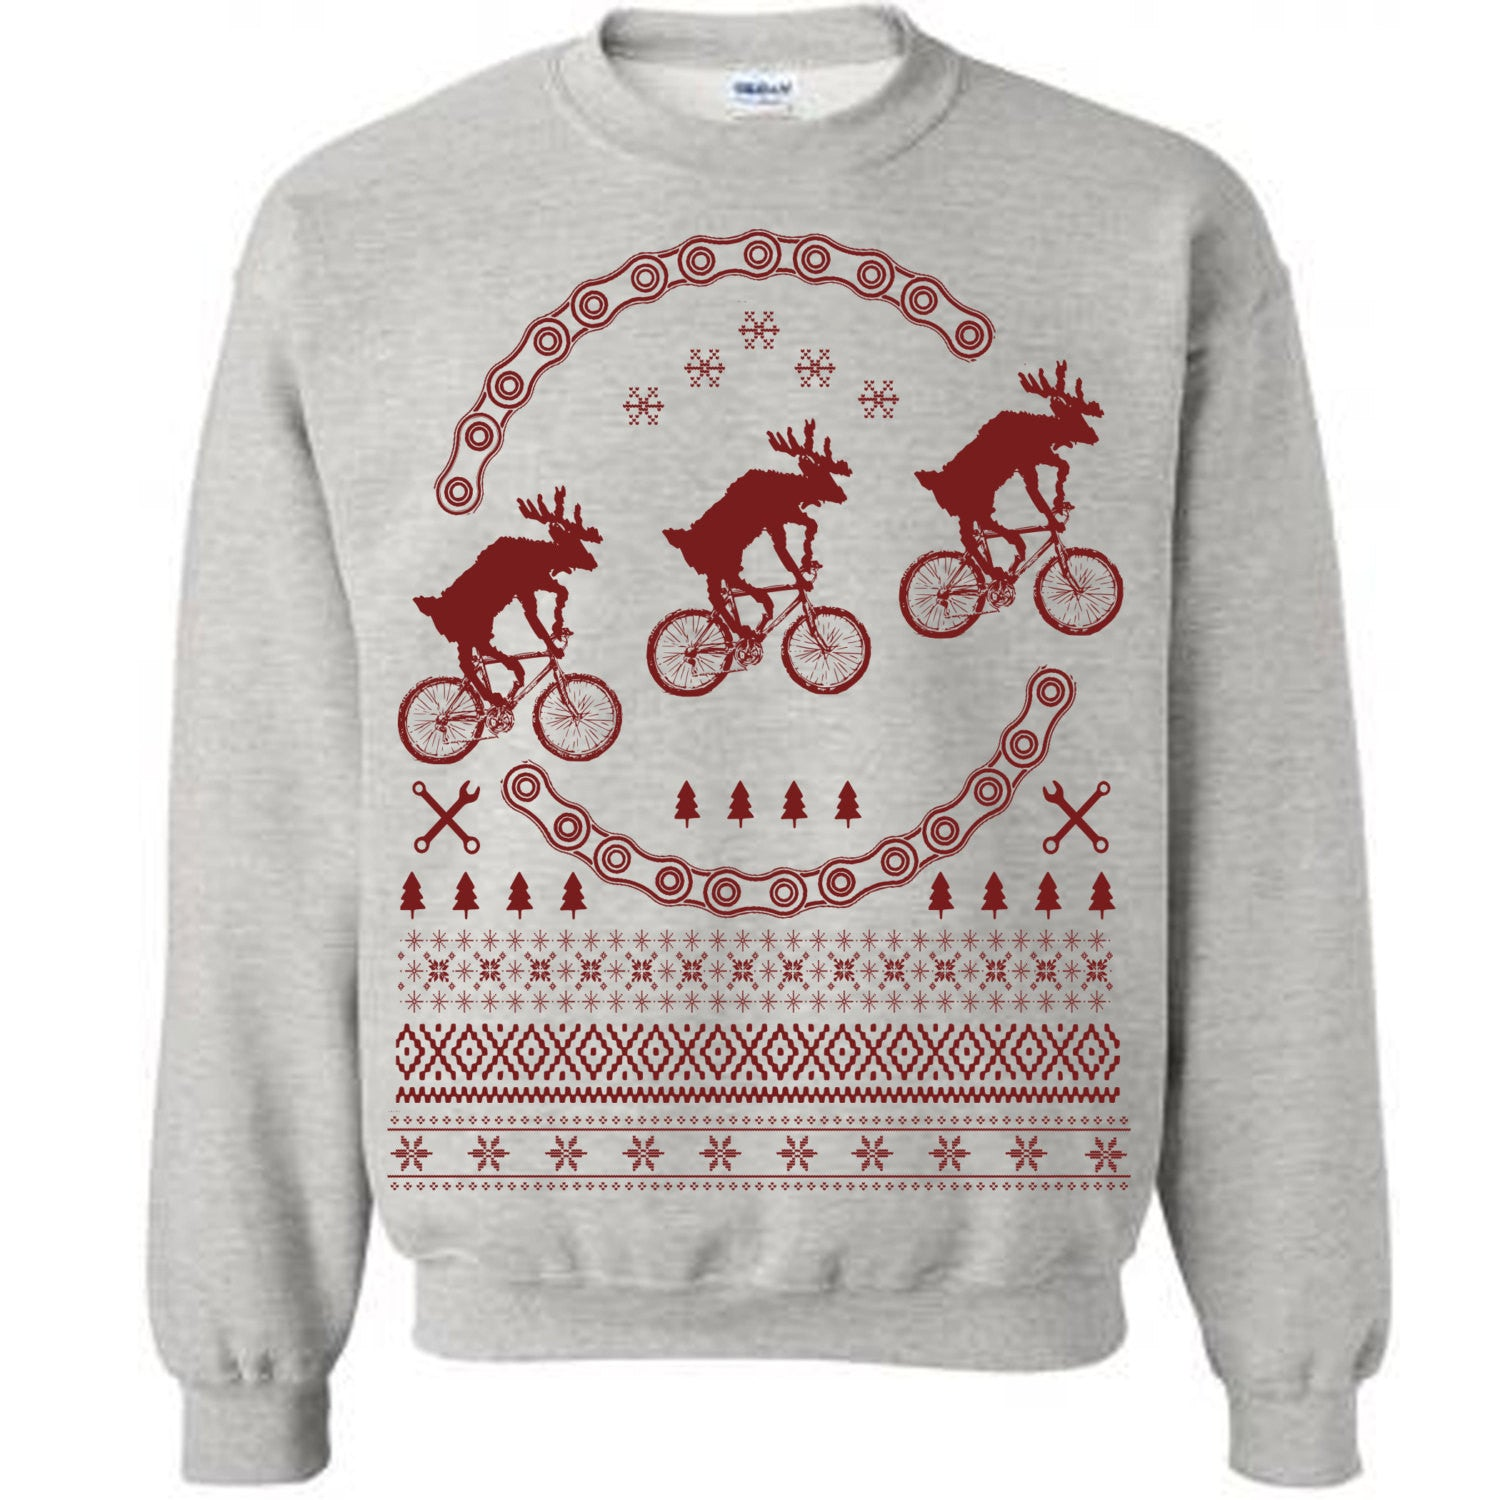 Ride to the Moon - Christmas Ugly Sweater - Bikes Ugly Christmas Sweat -  Last Earth Clothing 1b0f7d696